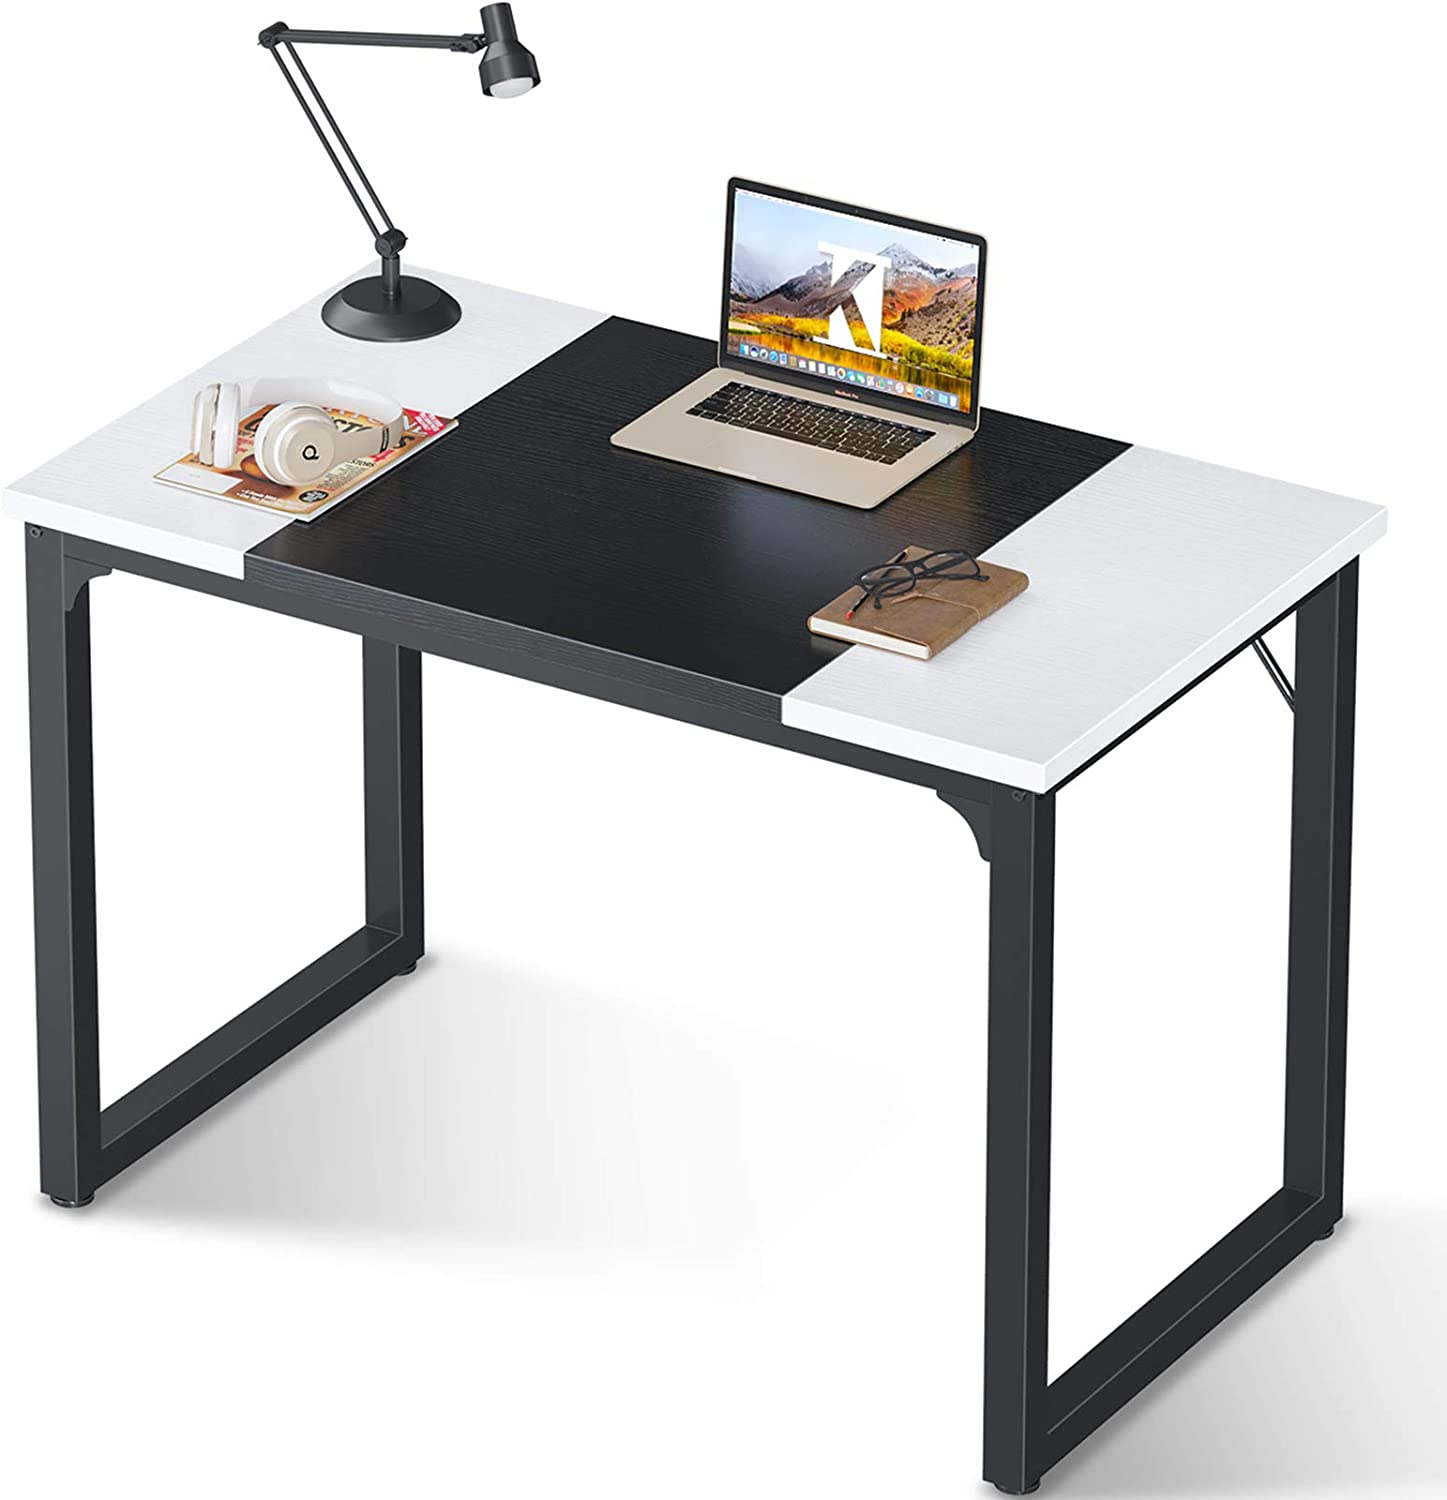 Coleshome Computer Small Study Writing Desk 39 inch,Work Home Office Desk for Small Space, Student Kids Desk with Splice Board, White and Black